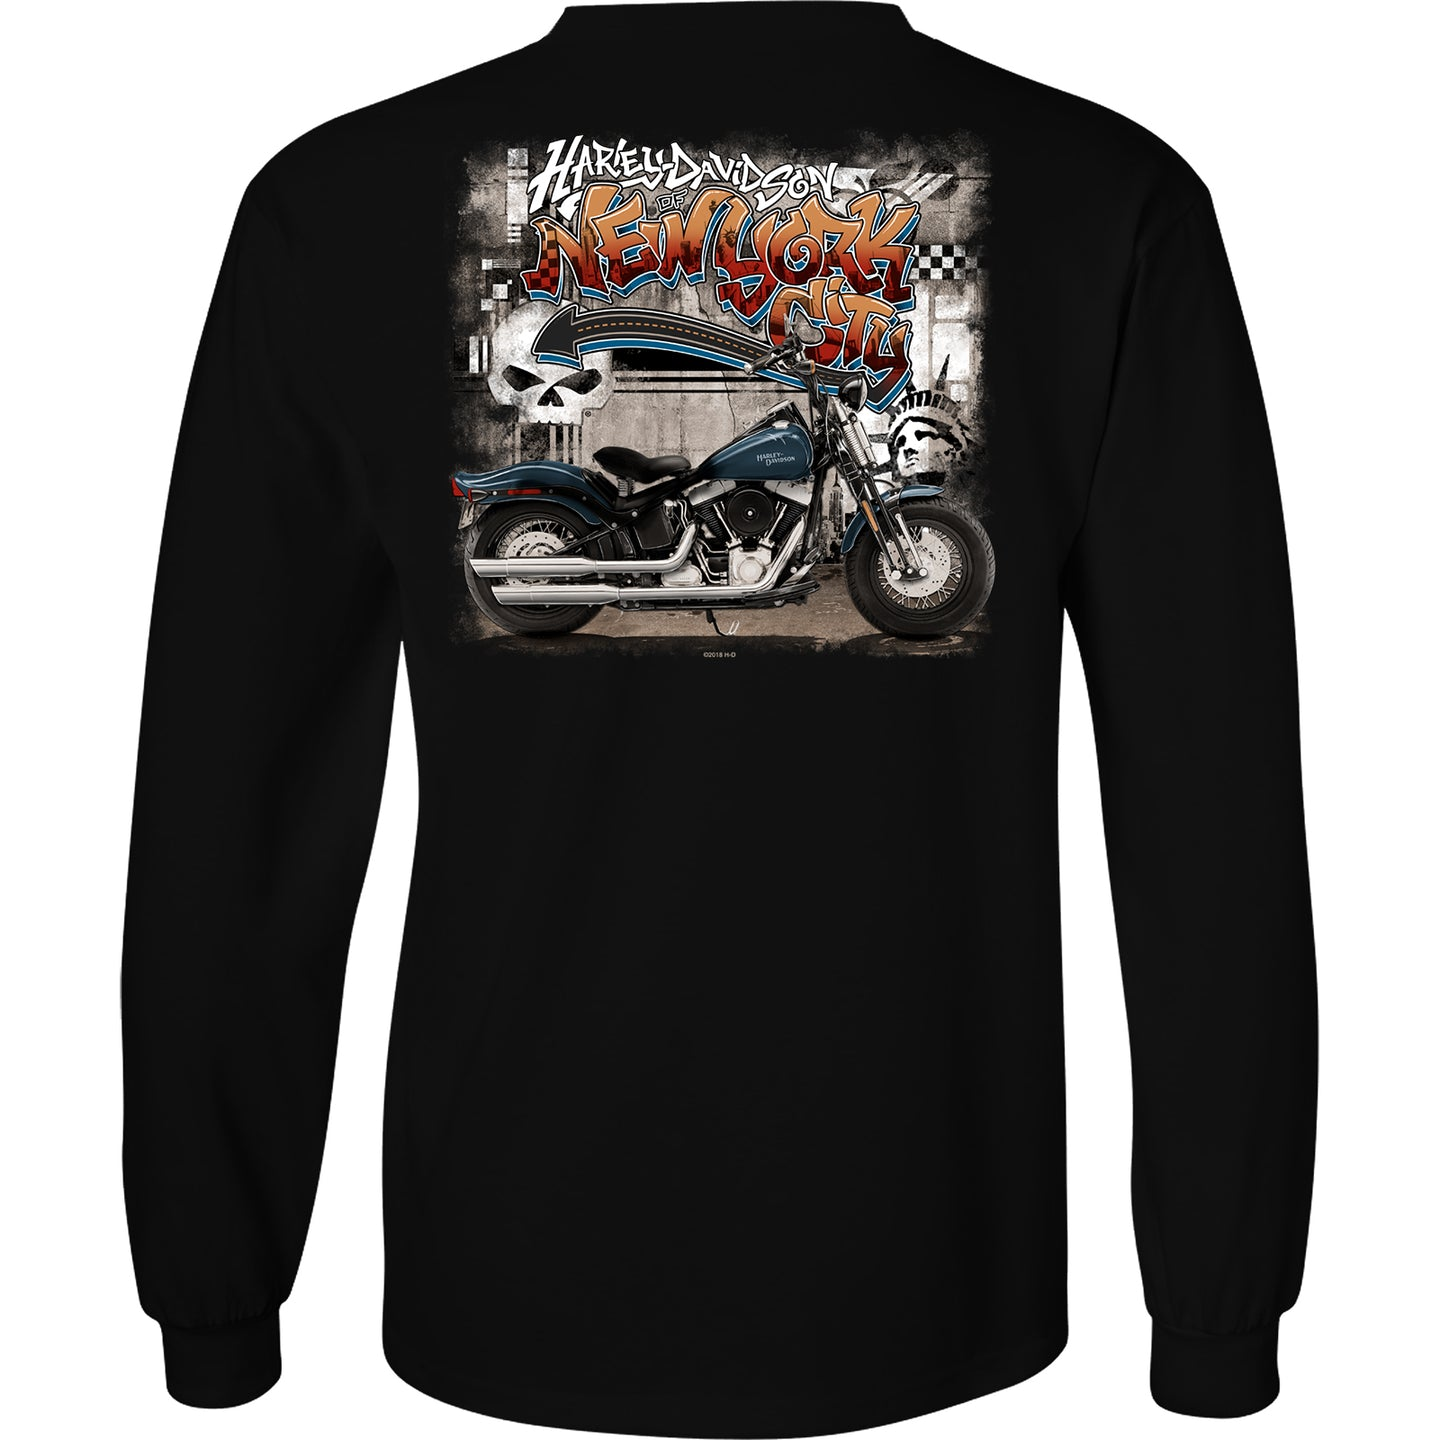 NYC Exclusive Black Graffiti Long Sleeve Shirt